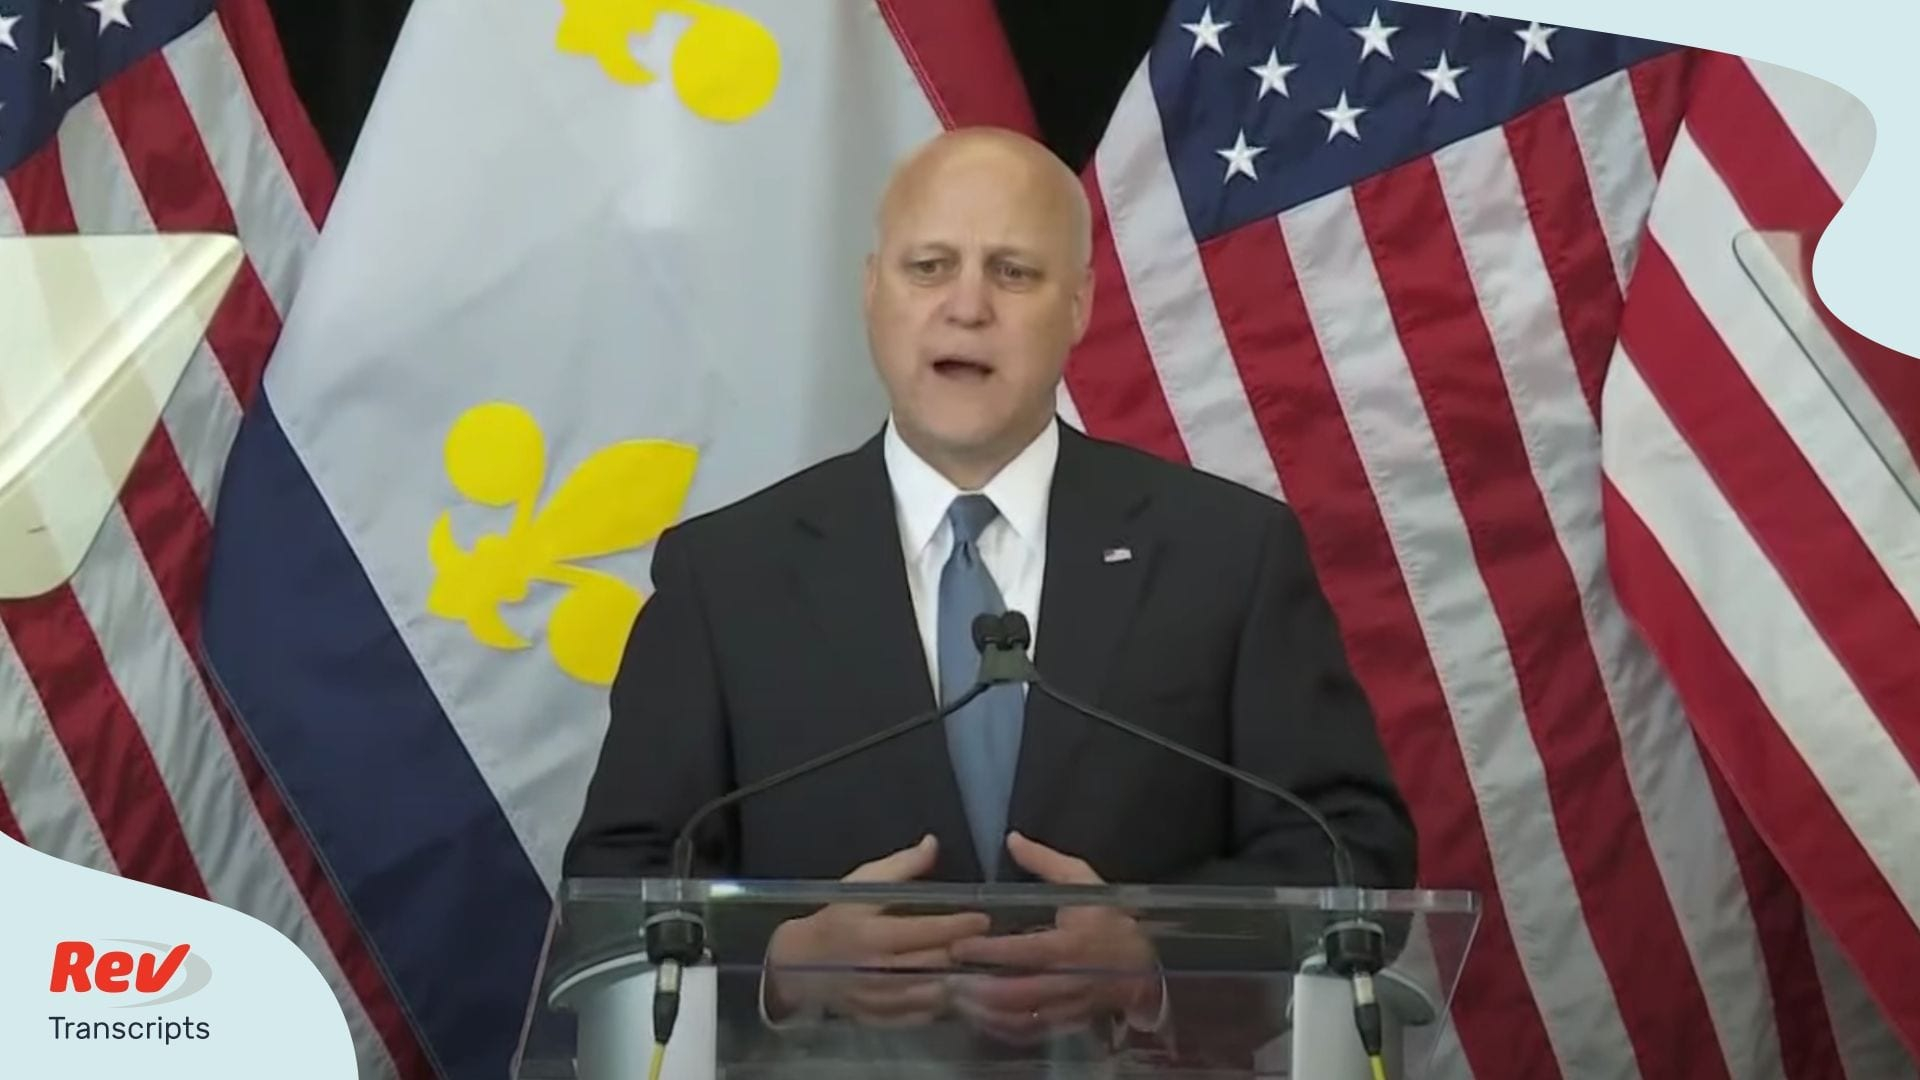 Mayor Mitch Landrieu's speech transcript removal of Confederate monuments